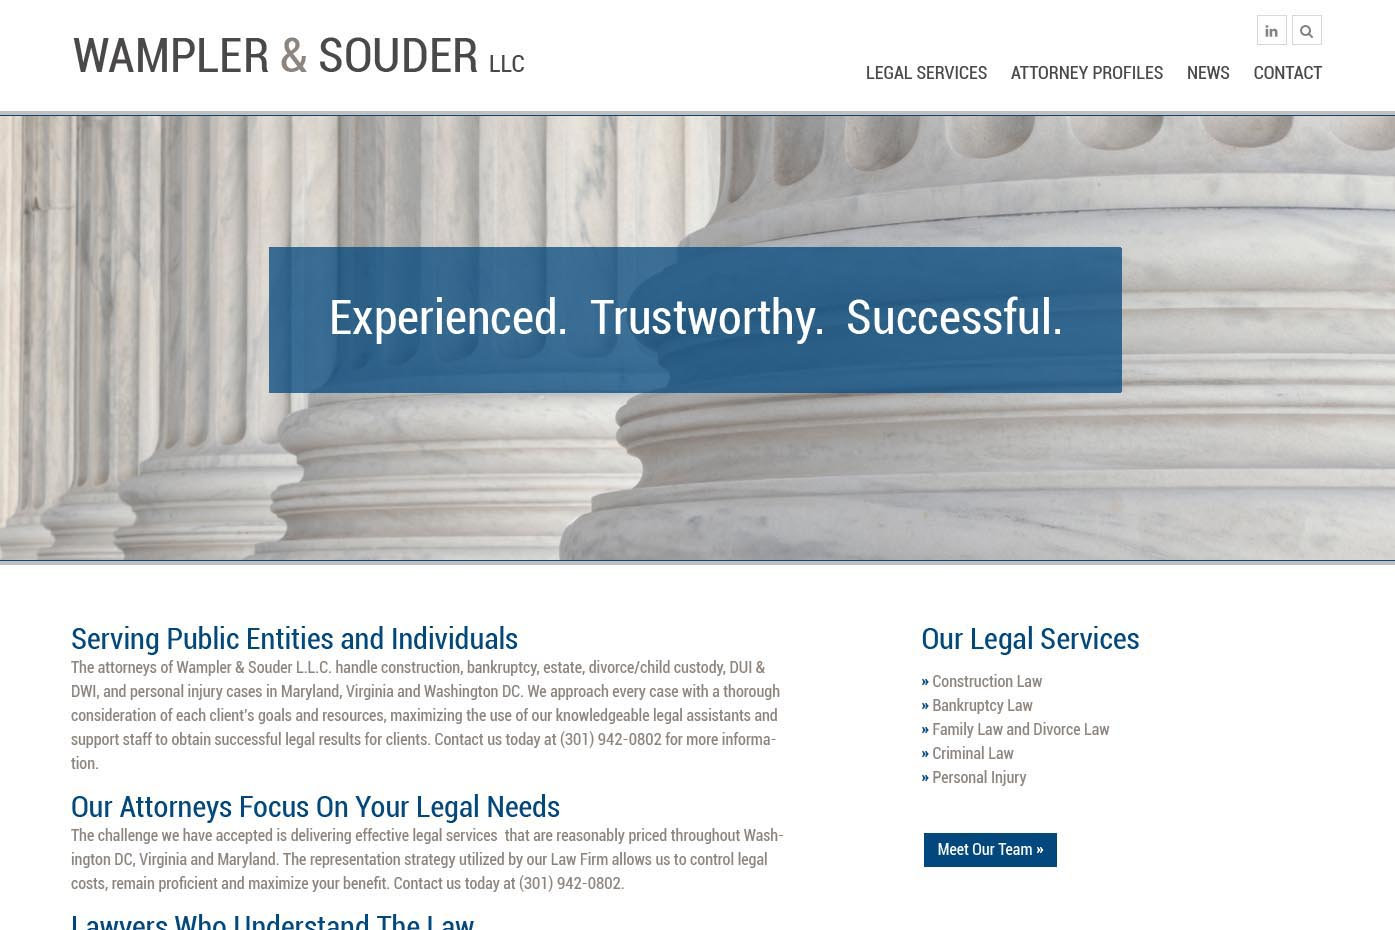 draft web design for a law firm